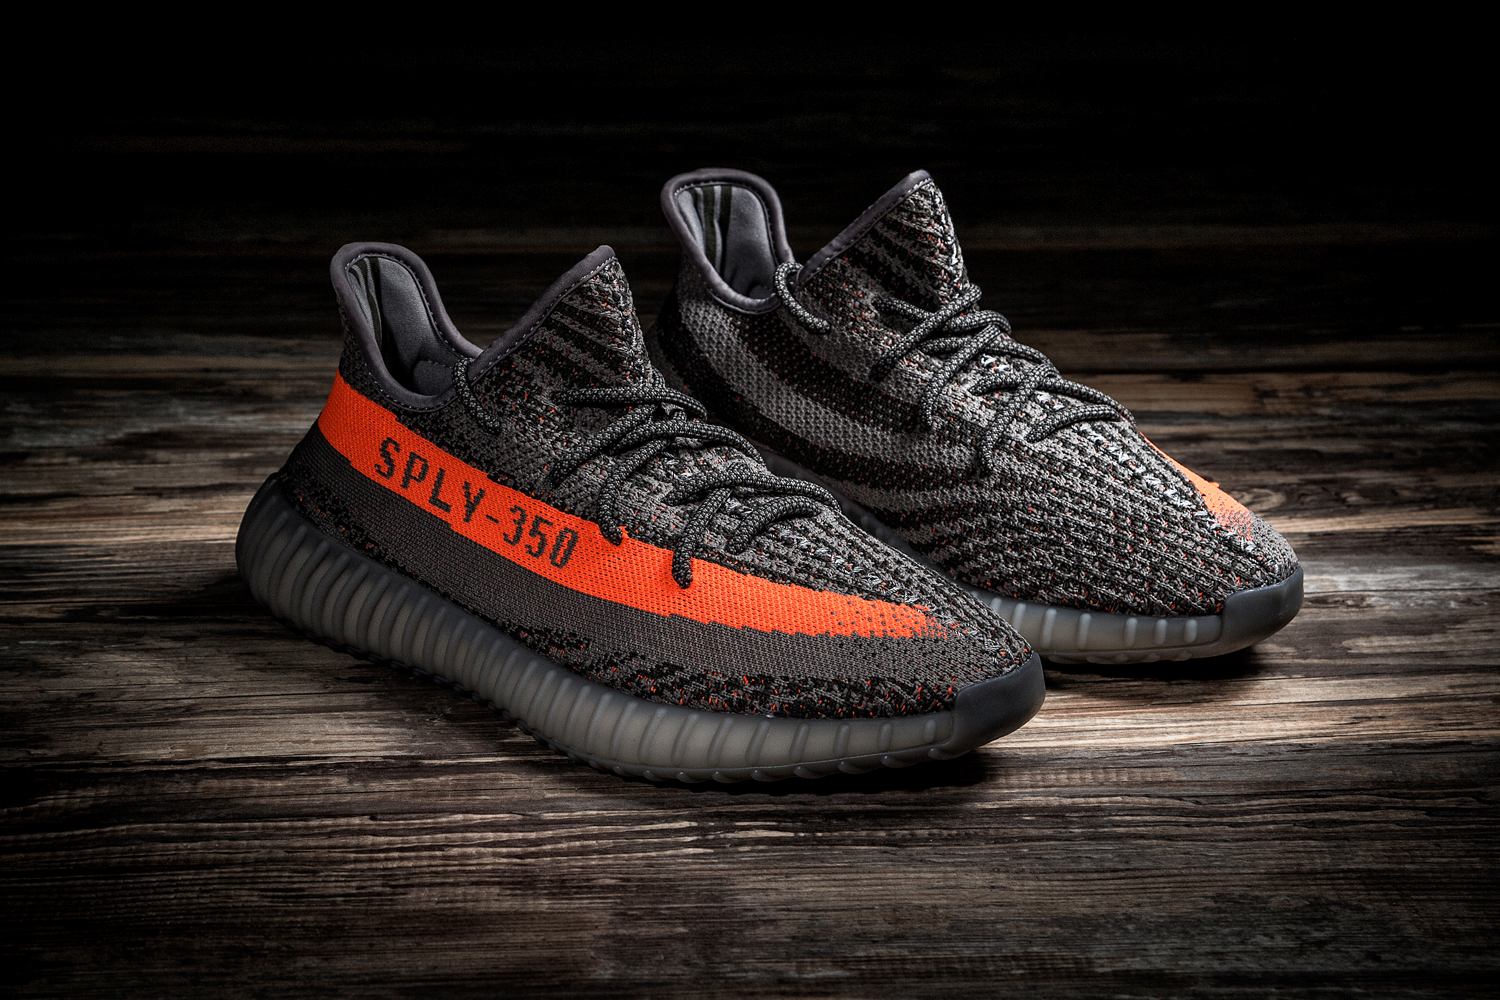 A Closer Look at the adidas Yeezy Boost 350 V2 Kanye west SOLAR RED/STEEPLE GRAY/BELUGA primeknit - 1316975